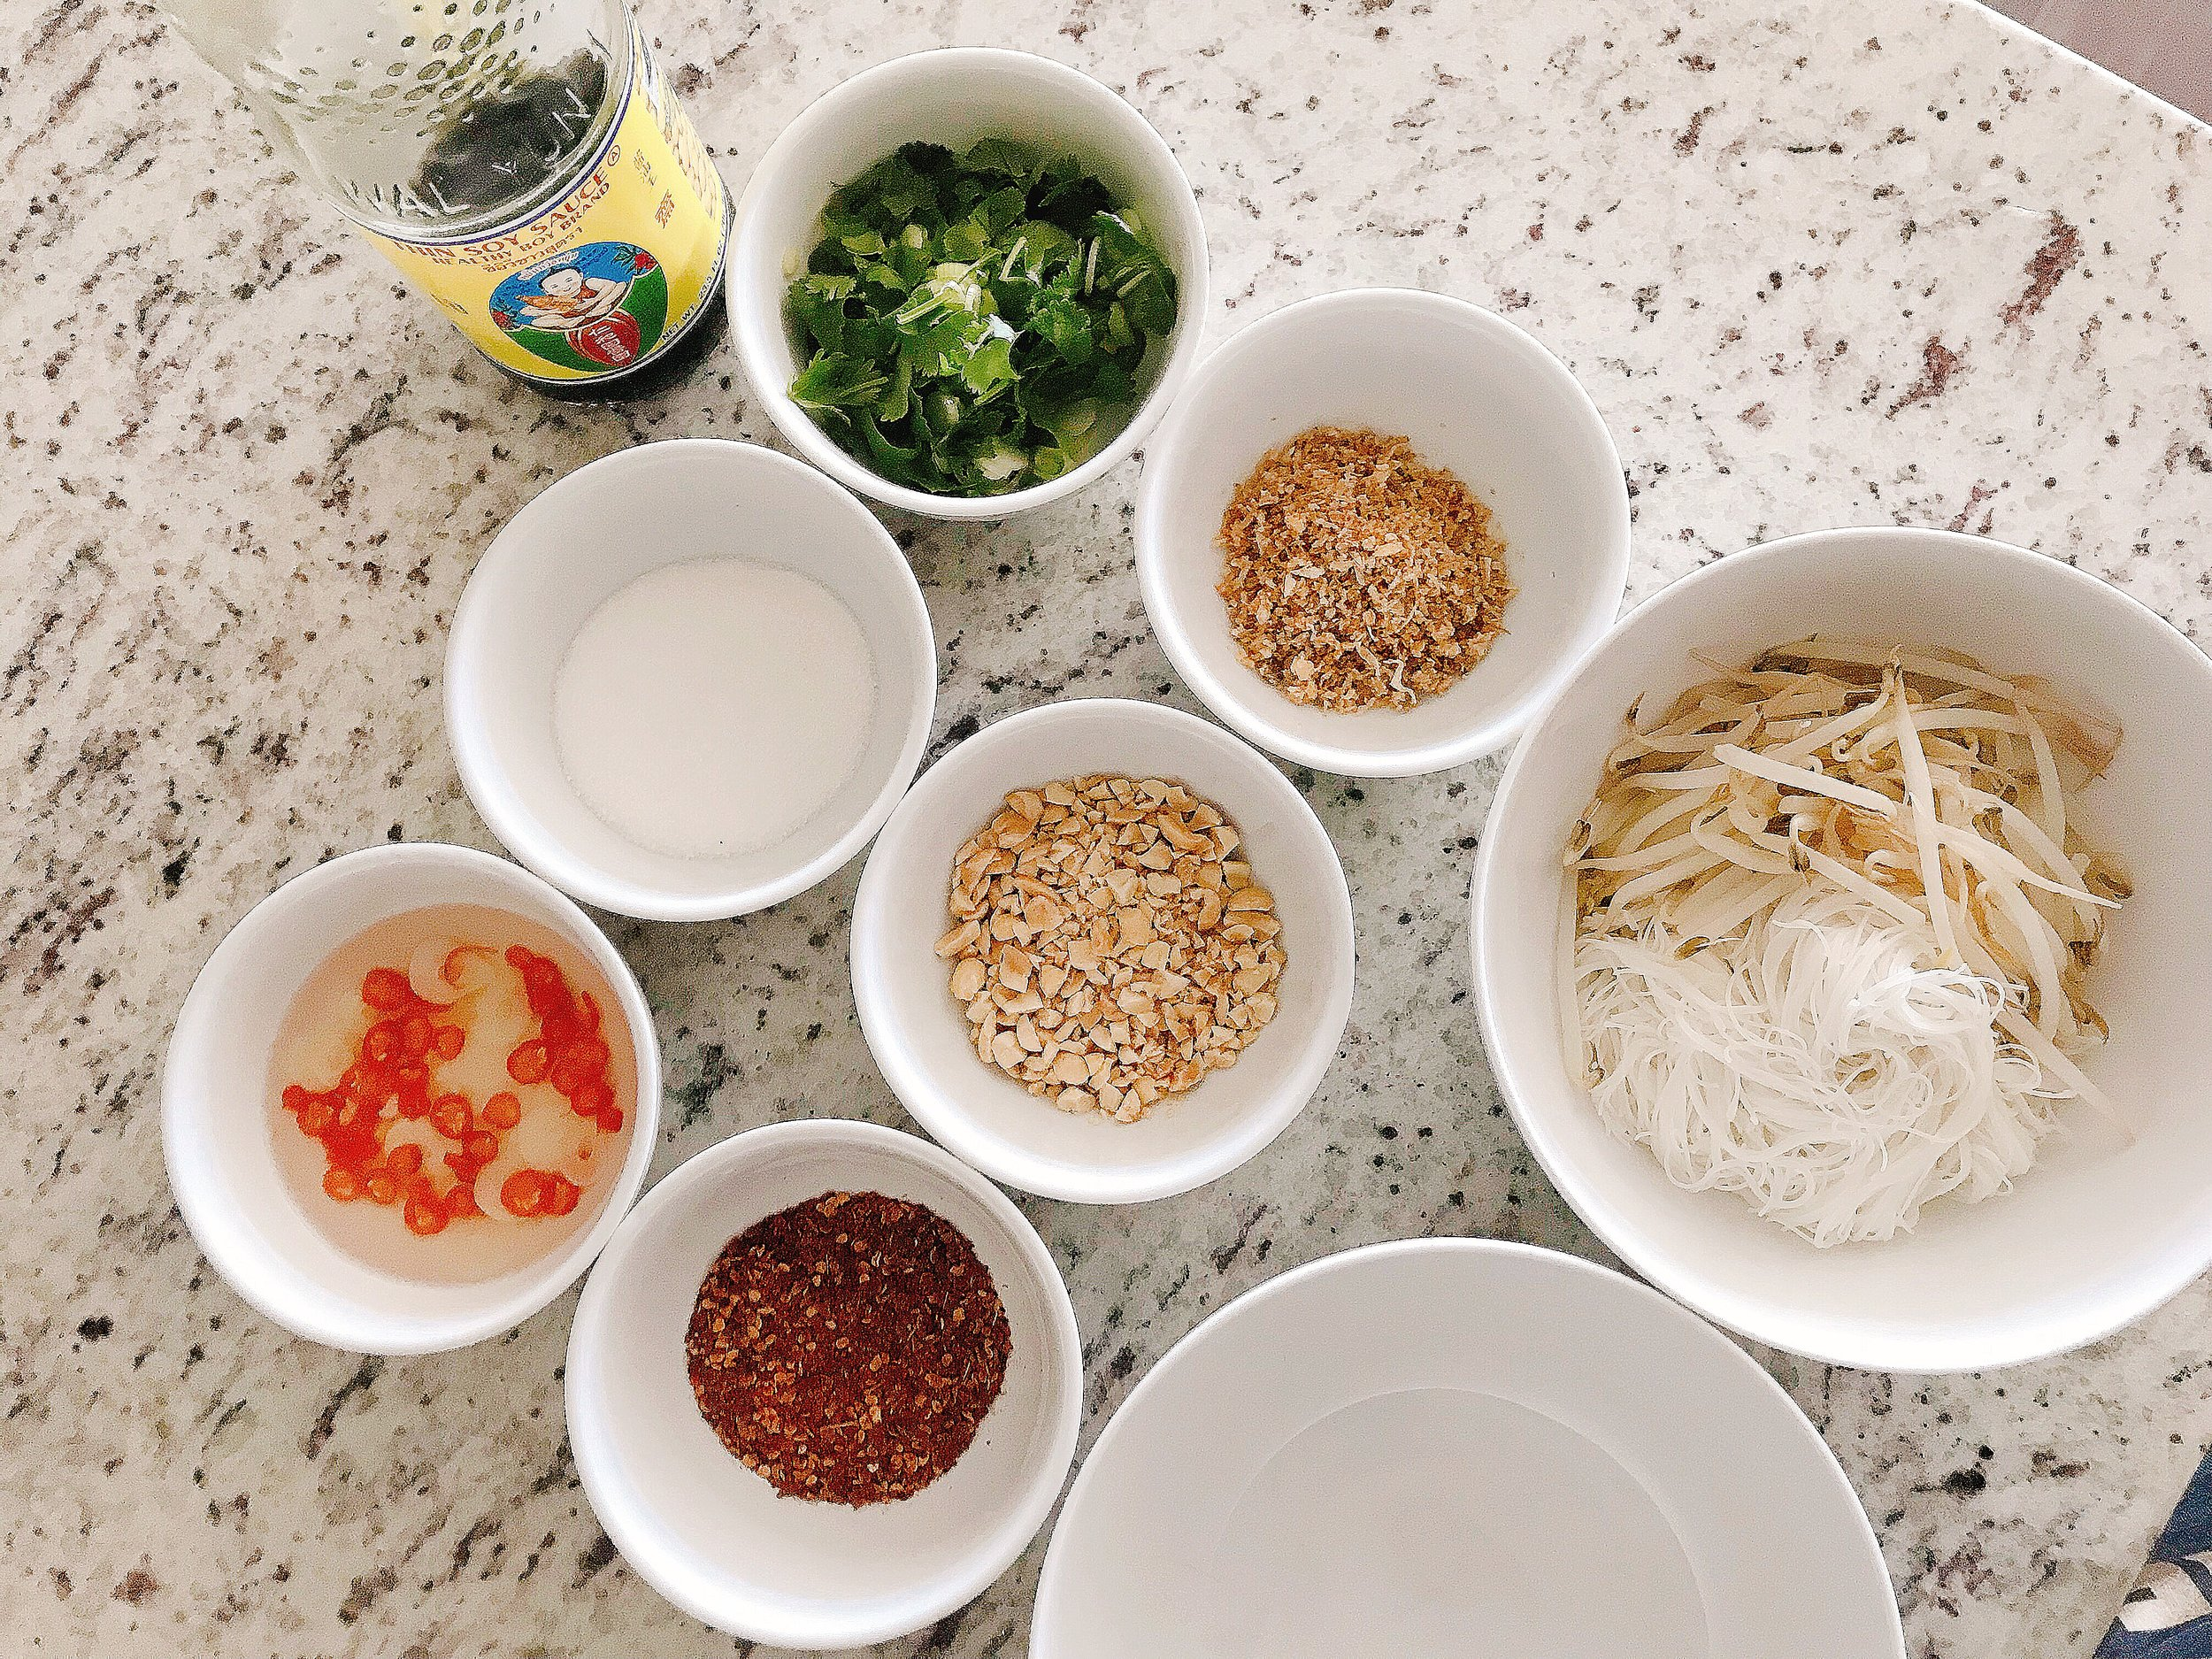 Mis en place.Top Row:soy sauce. Second Row: sliced chilis in vinegar, white sugar, chopped scallions and green onions. Third Row: dried chili flakes, chopped dry roasted salted peanuts, and fried garlic flakes.